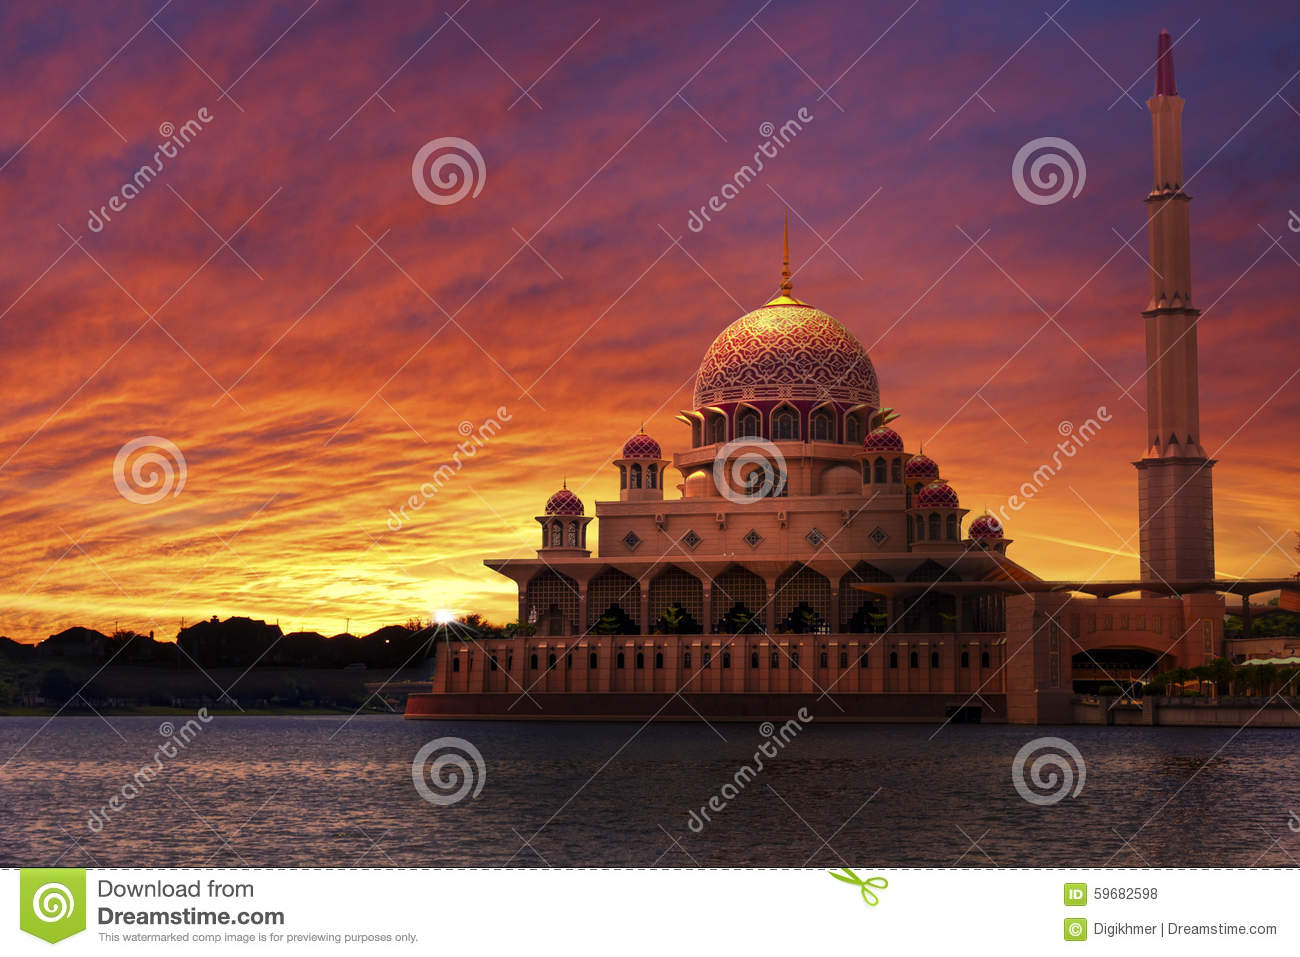 Sunset at the Classic Mosque